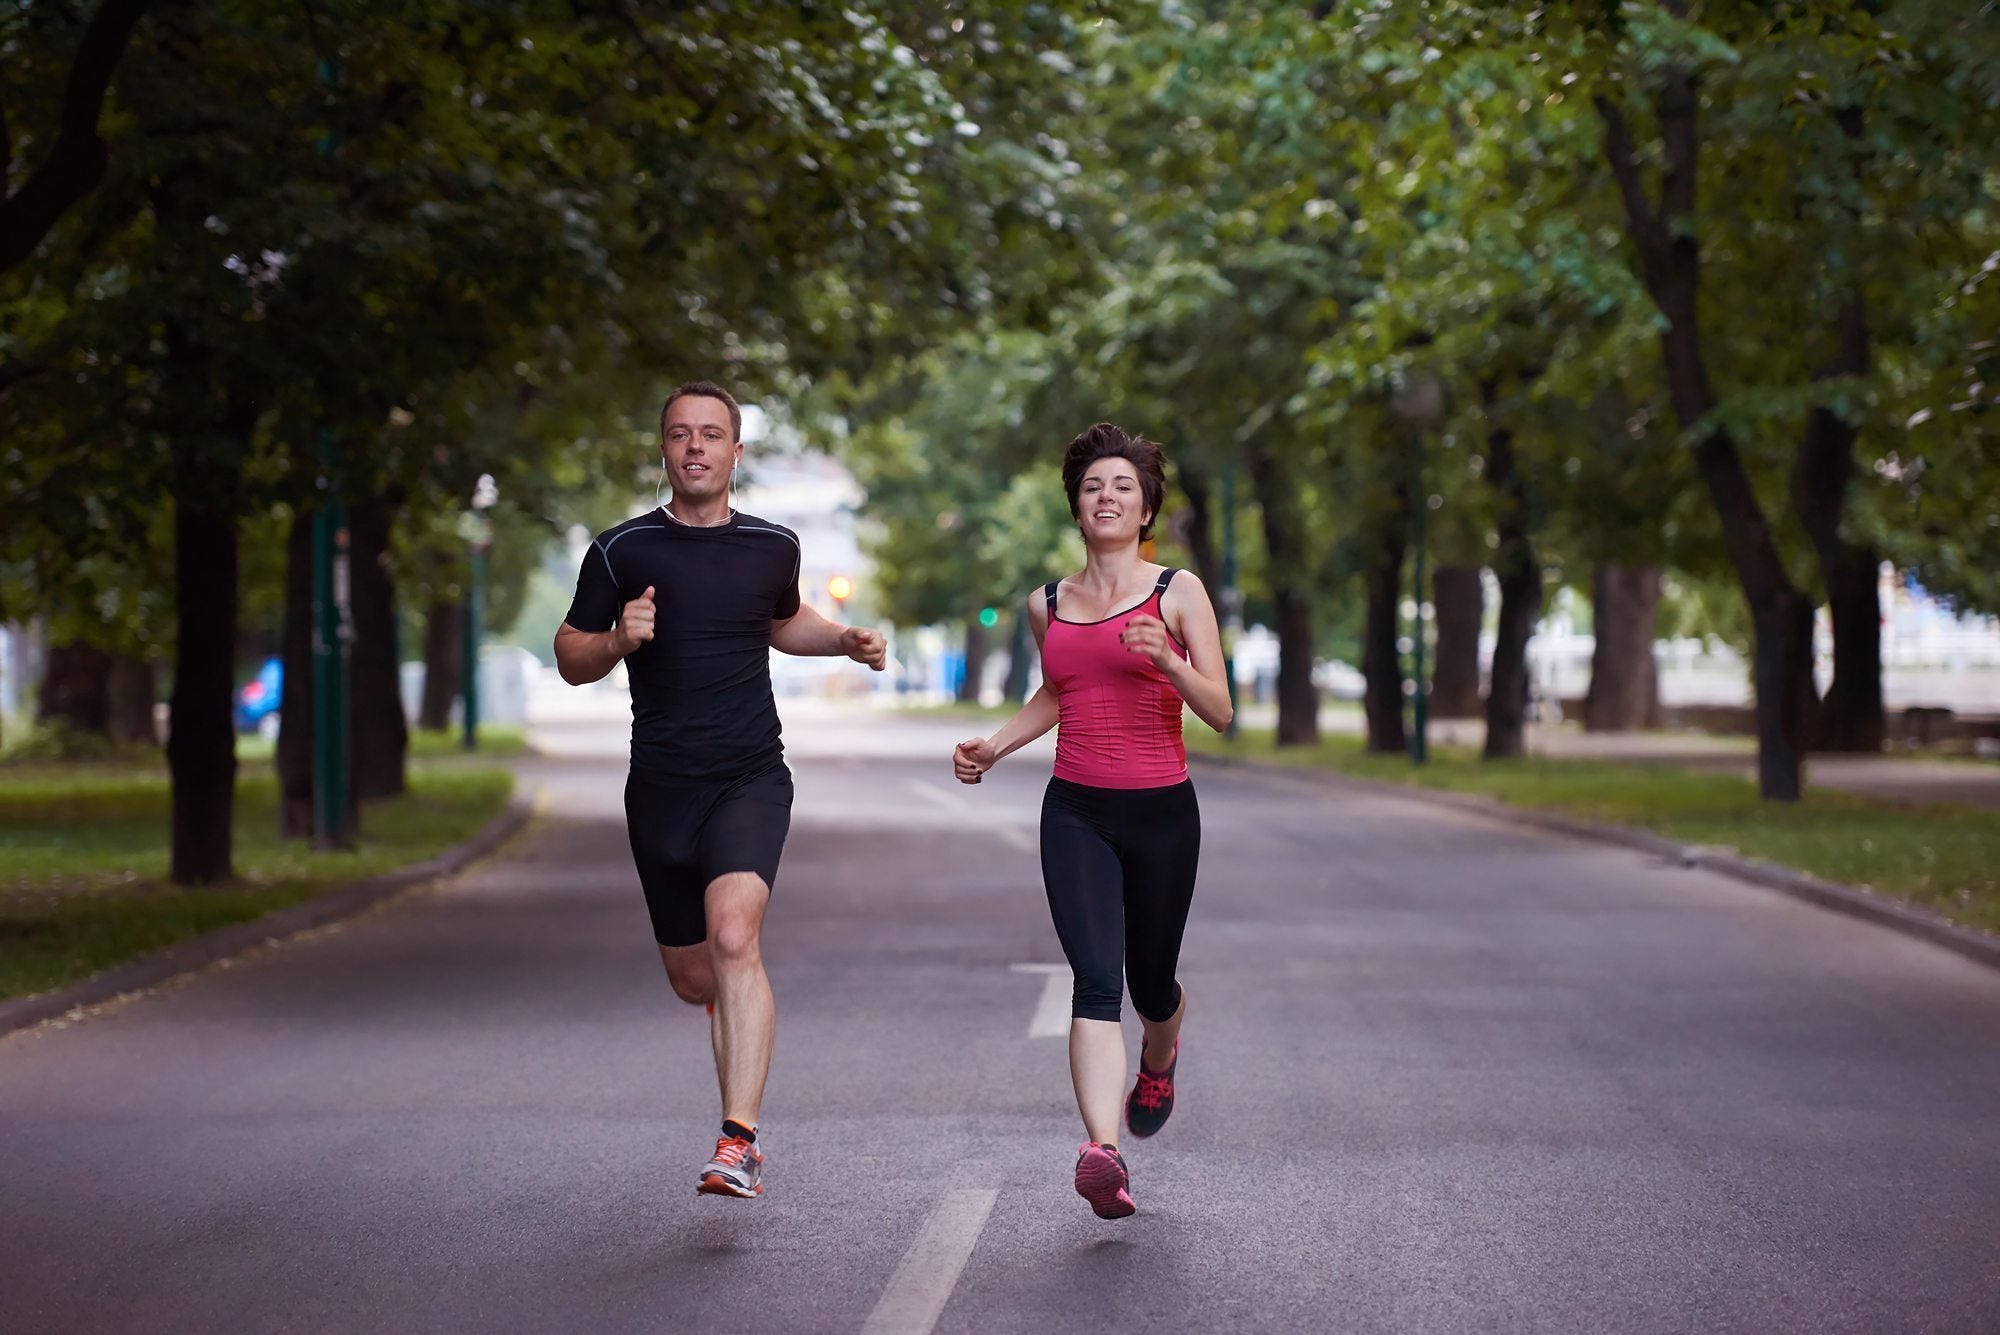 exercise and movement is a great way to improve your health